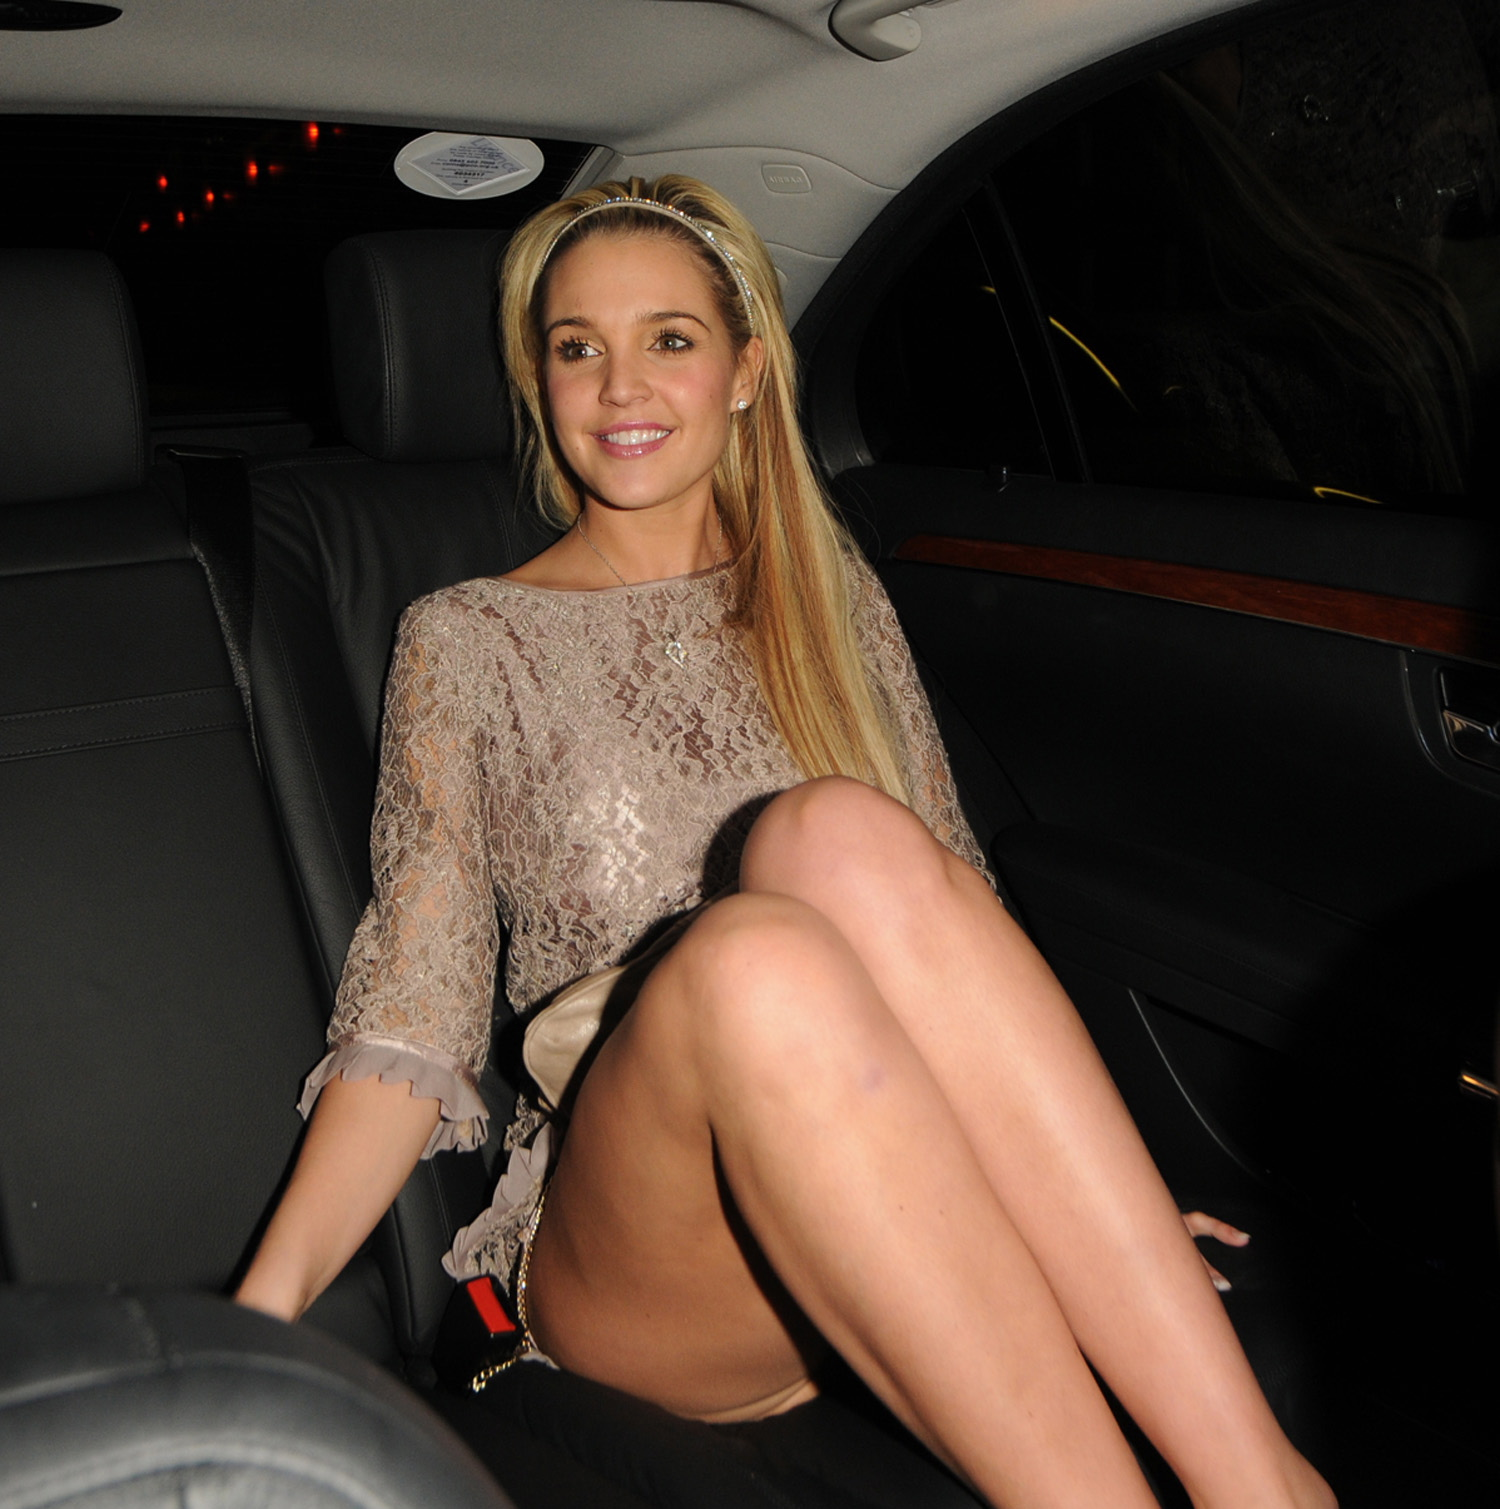 And danielle lloyd upskirt can doggystyle